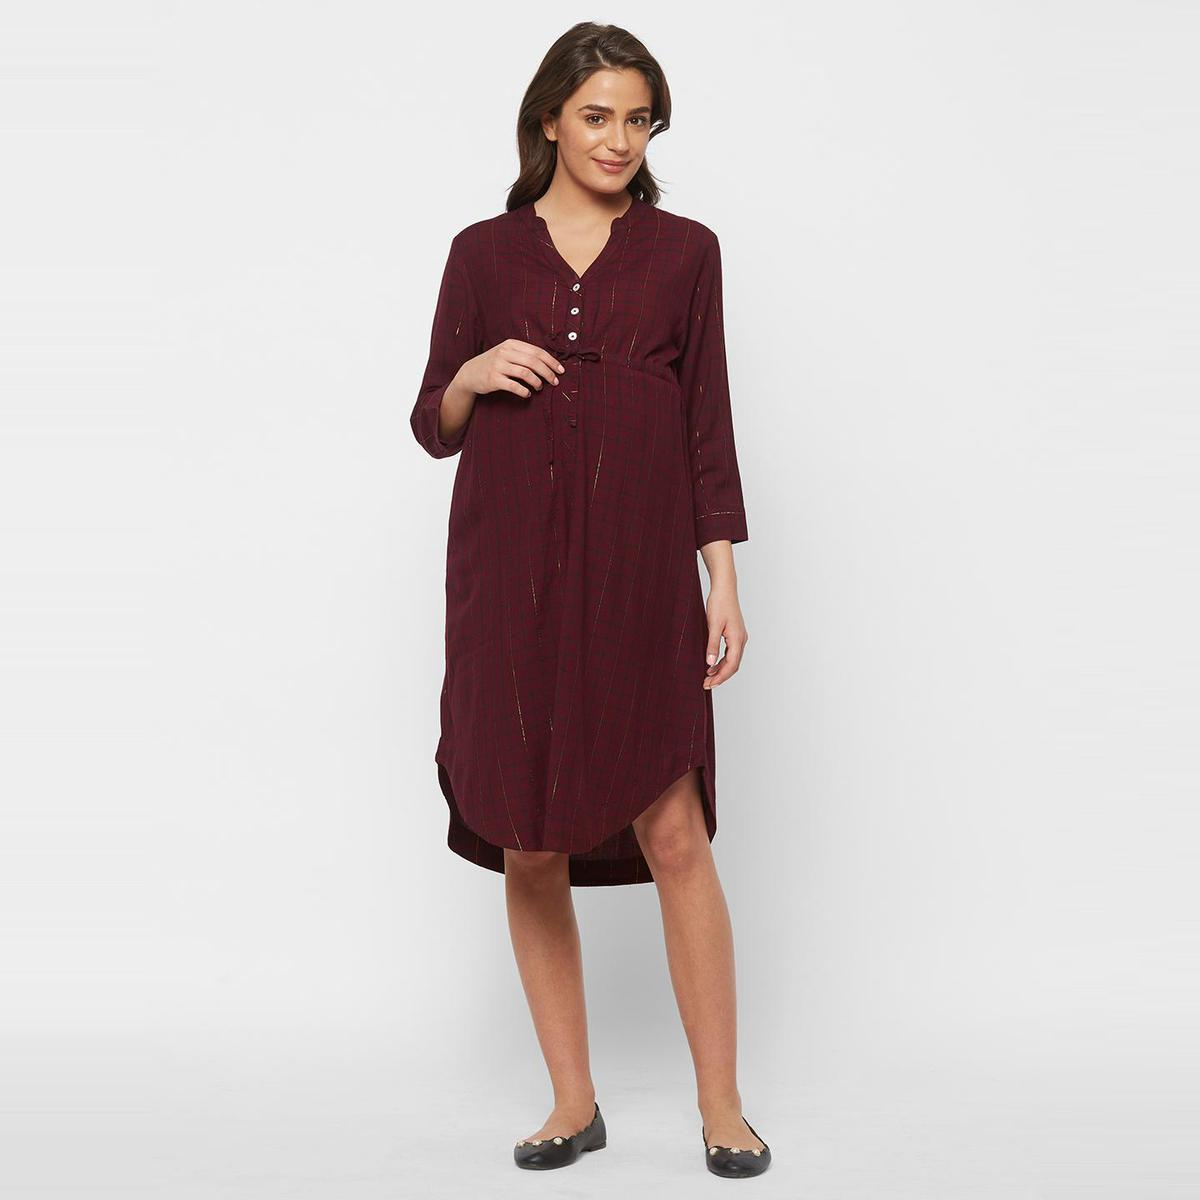 Mystere Paris - Maroon Gold Colored Classy Checked Rayon Maternity Dress